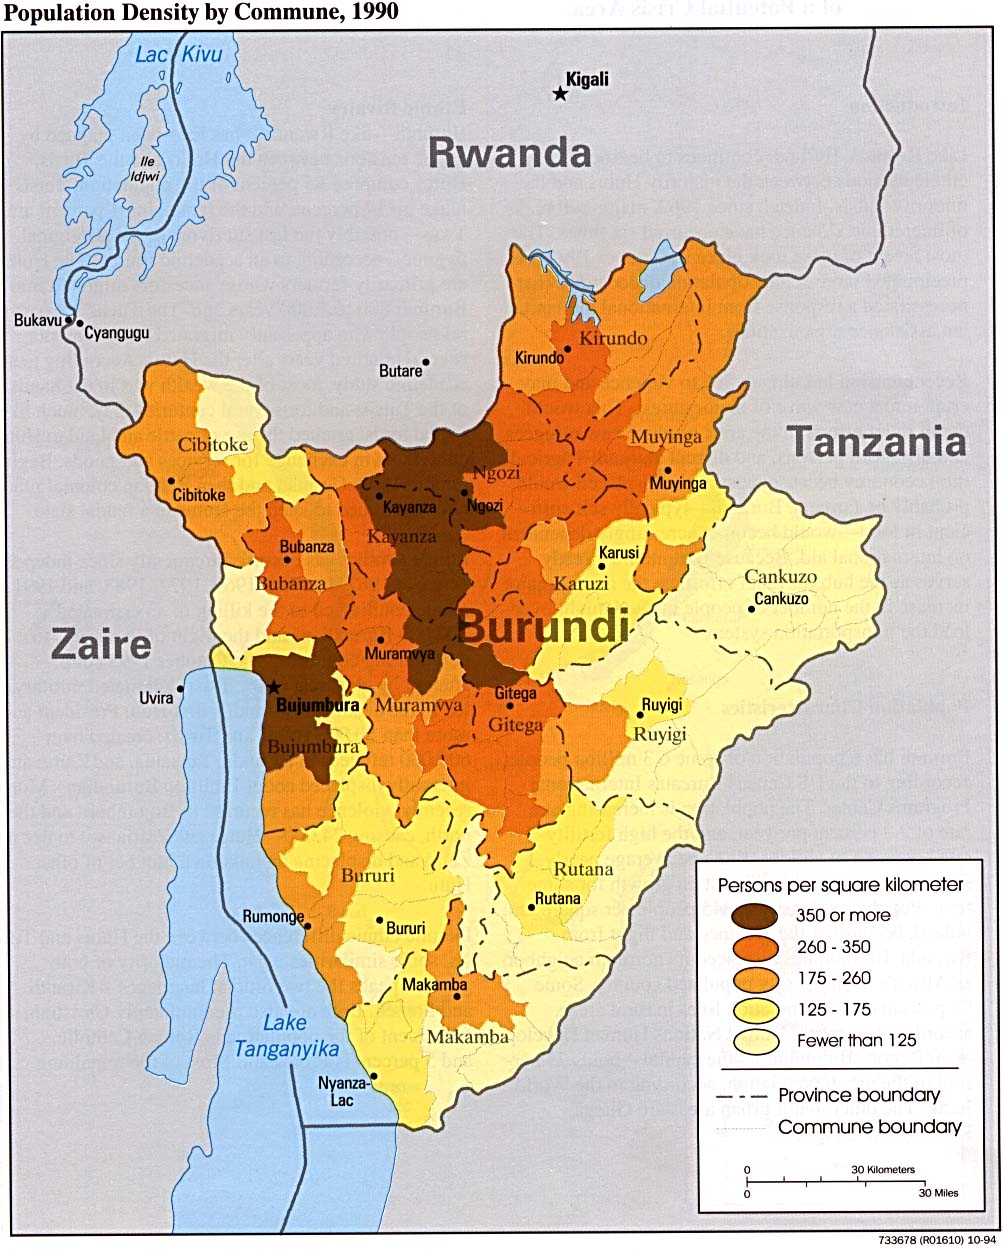 Population Density Map, Burundi